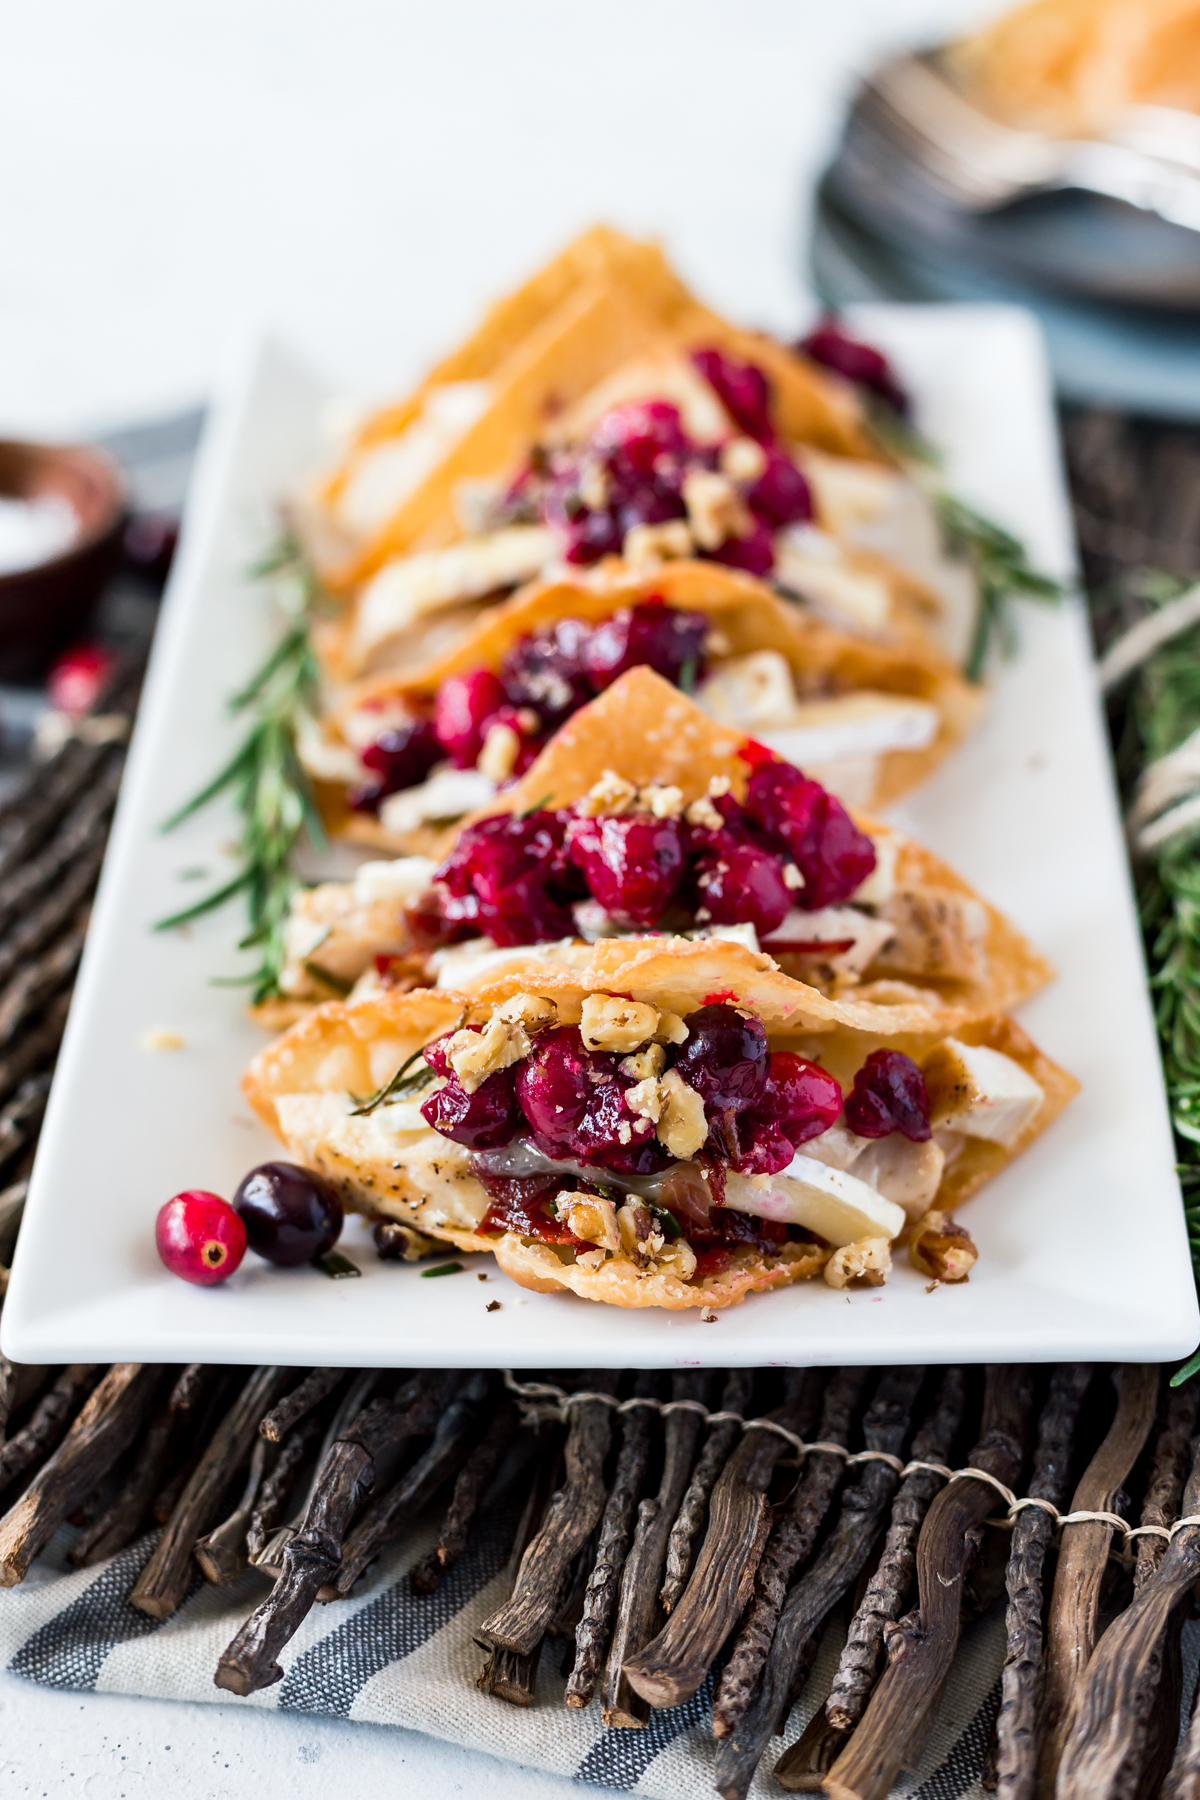 Cranberry Brie Chicken Wonton Tacos